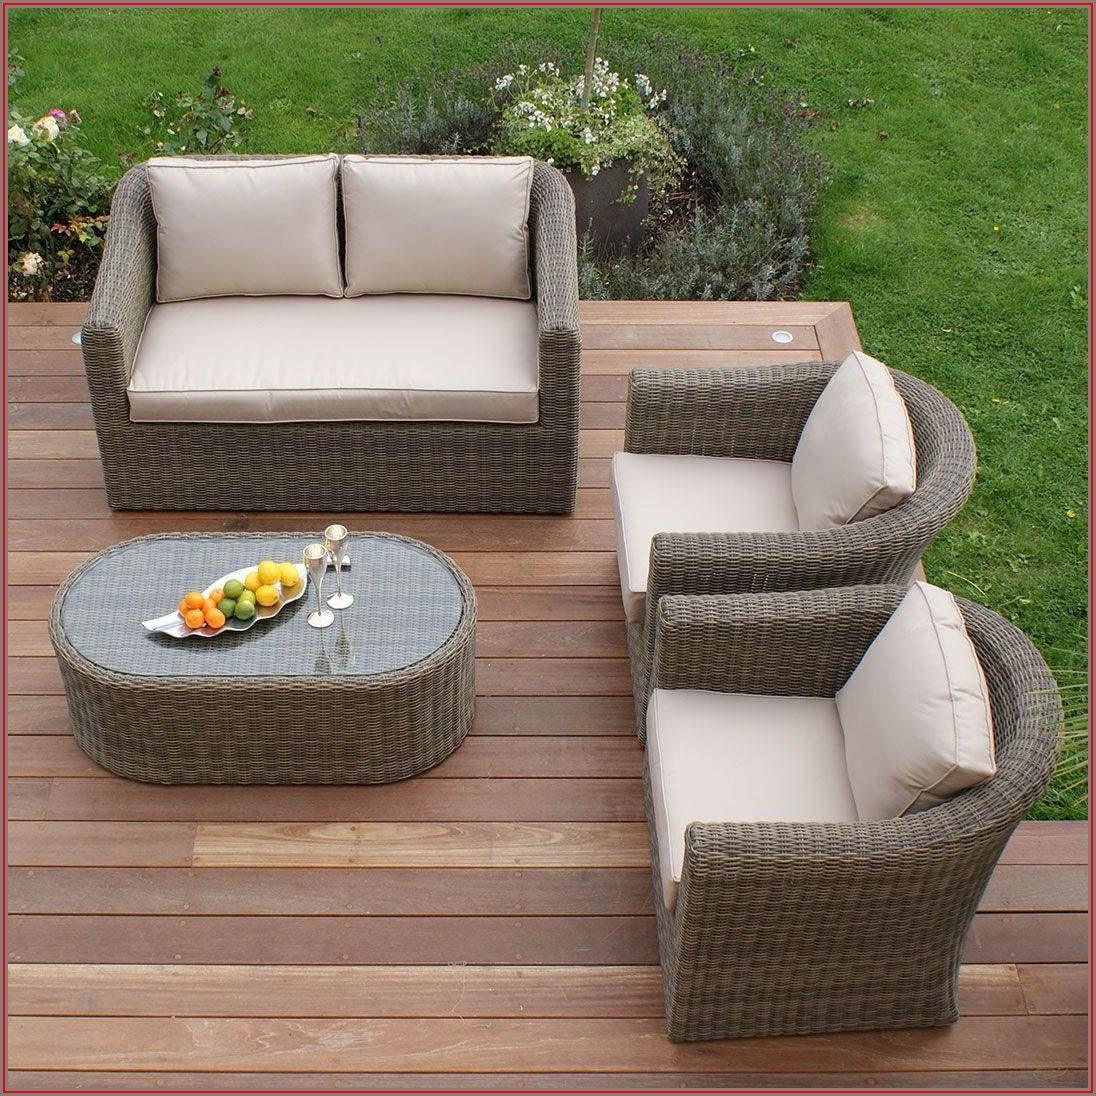 2 Seater Patio Furniture